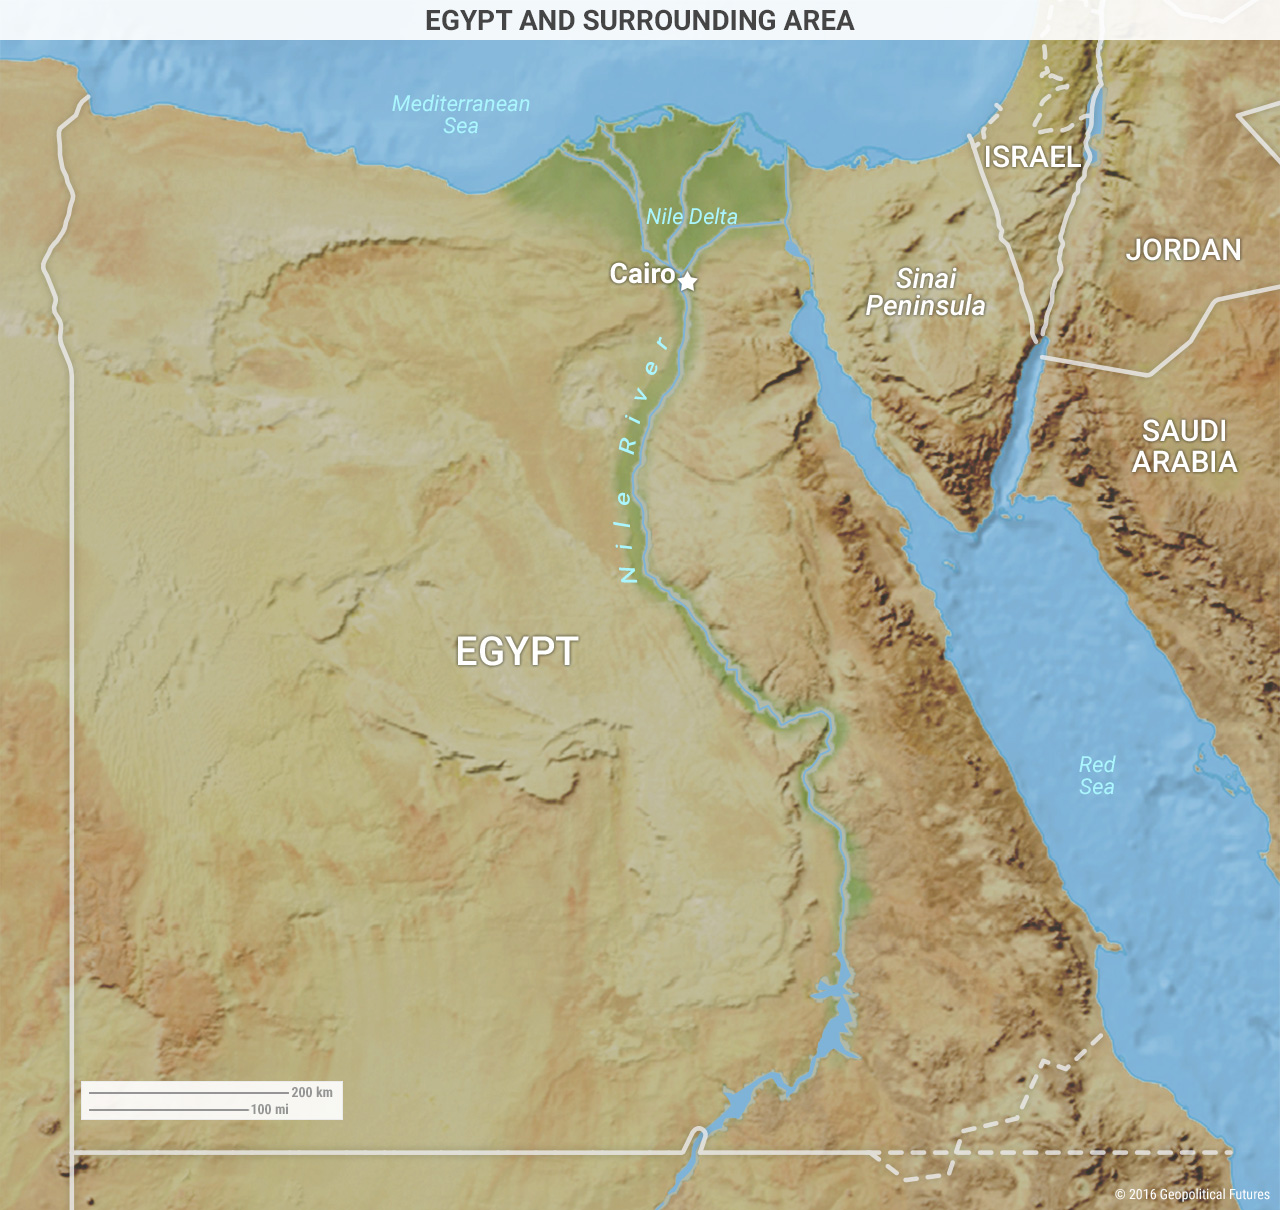 Egypt and Surrounding Area